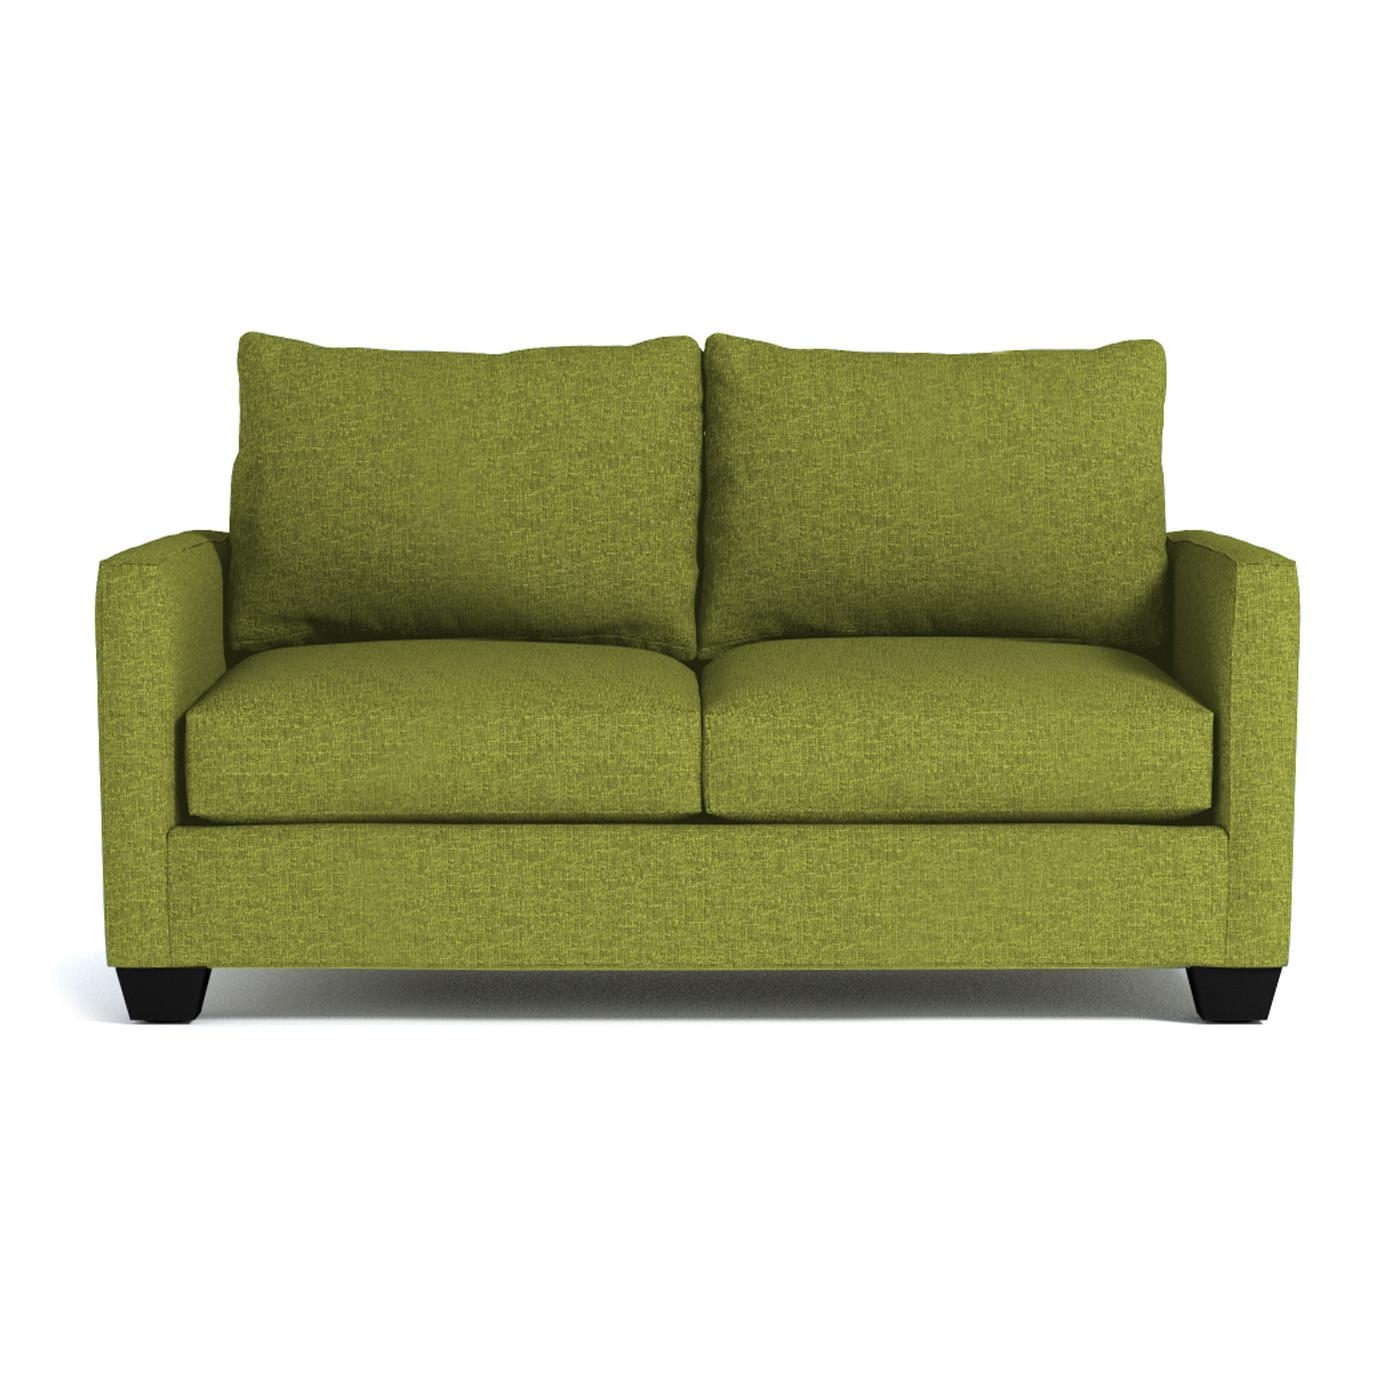 15 Collection of Apartment Size Sofas and Sectionals  Sofa Ideas